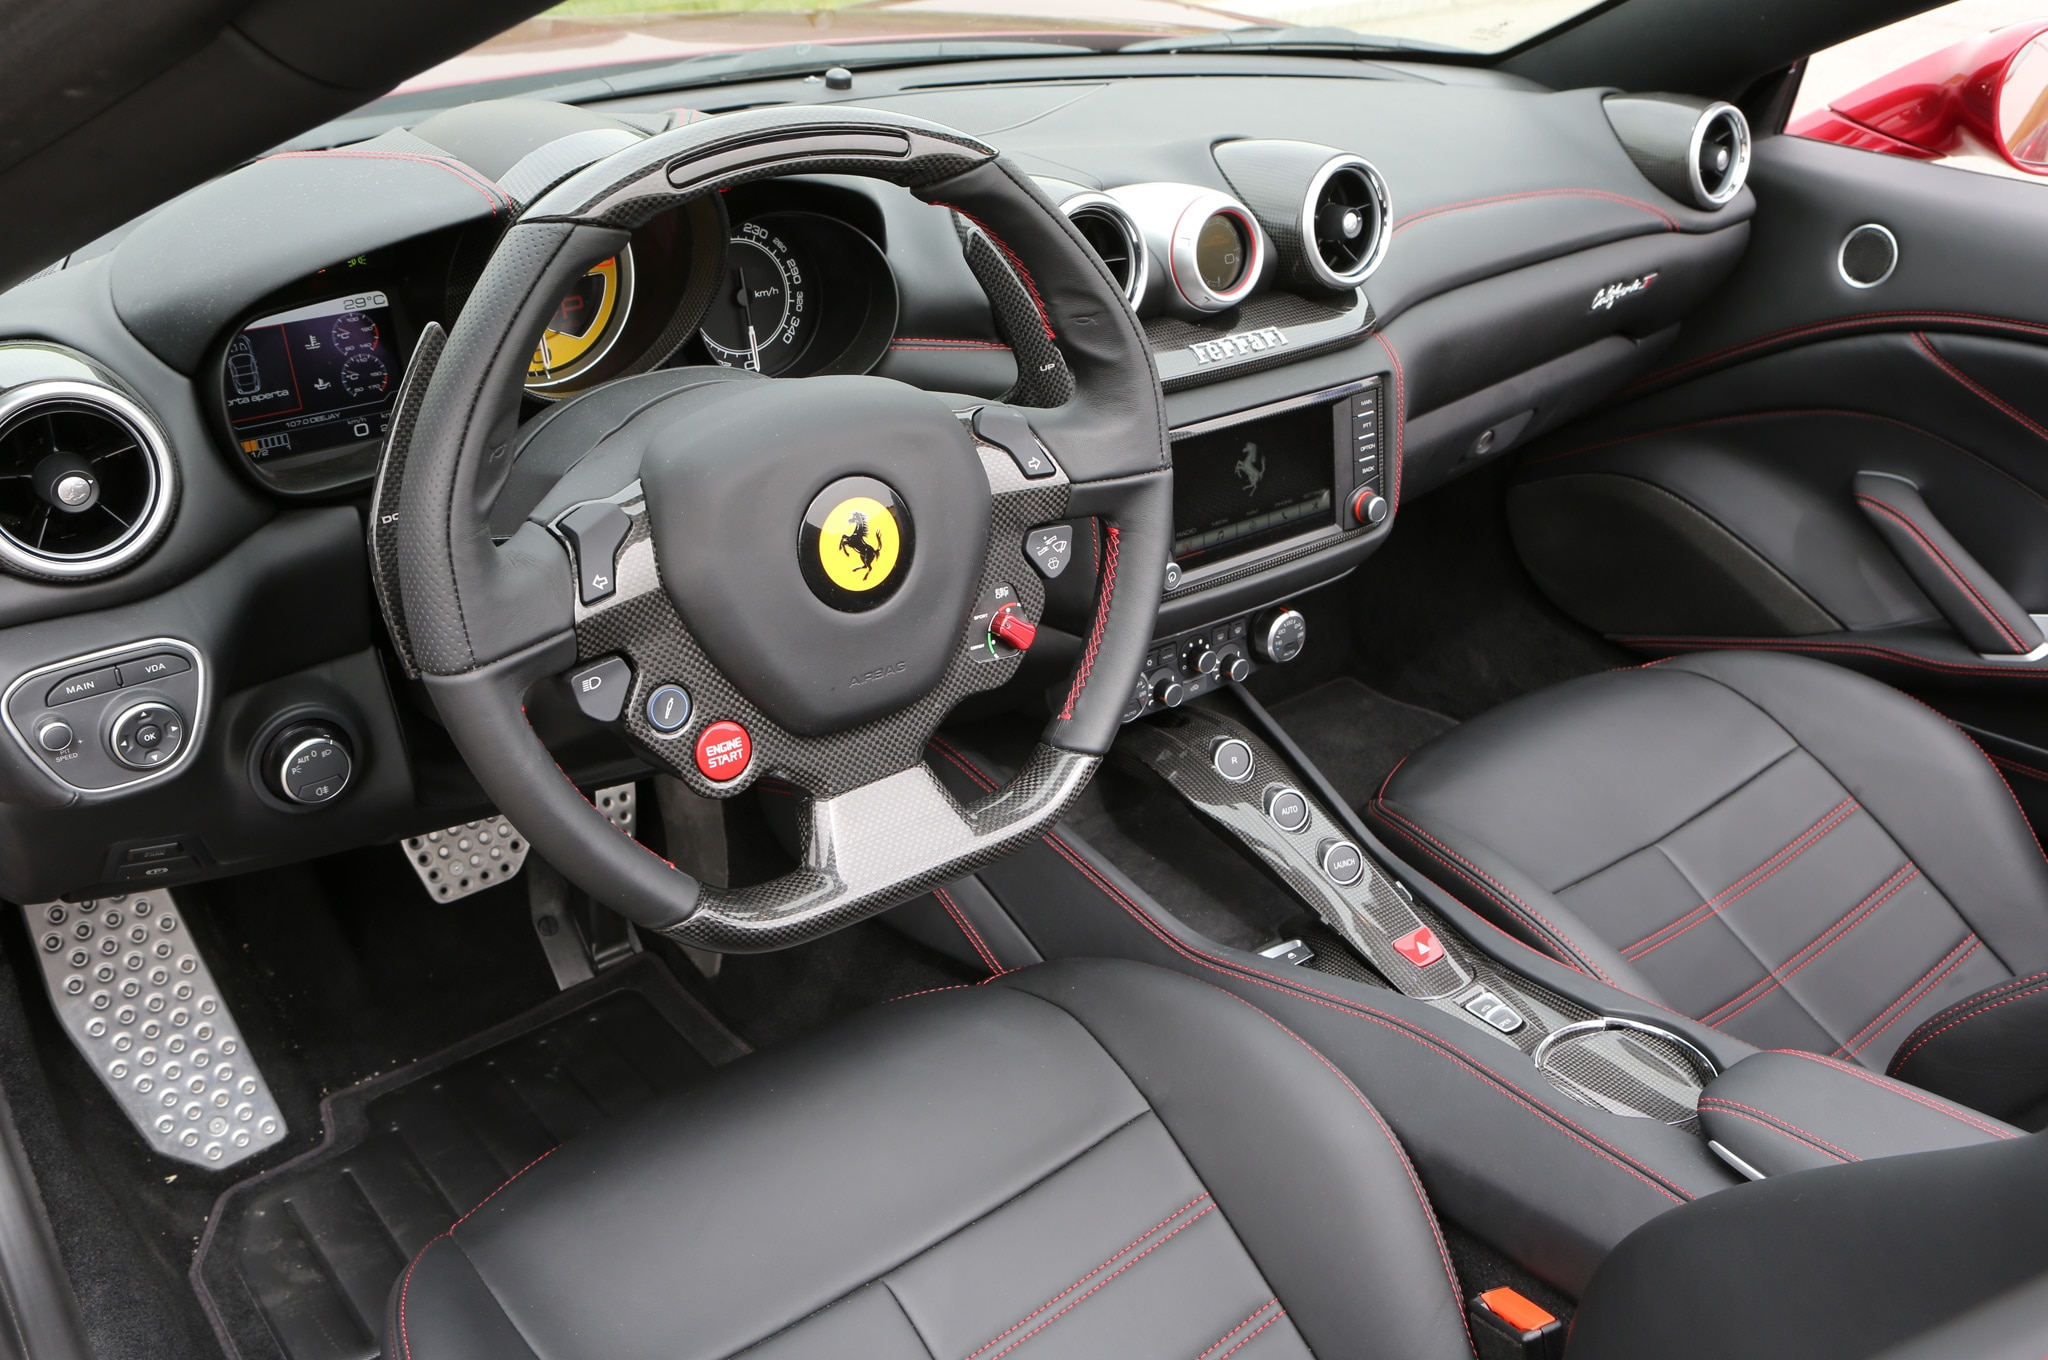 2015 ferrari california t interior in black - 2014 Ferrari 458 Italia Interior